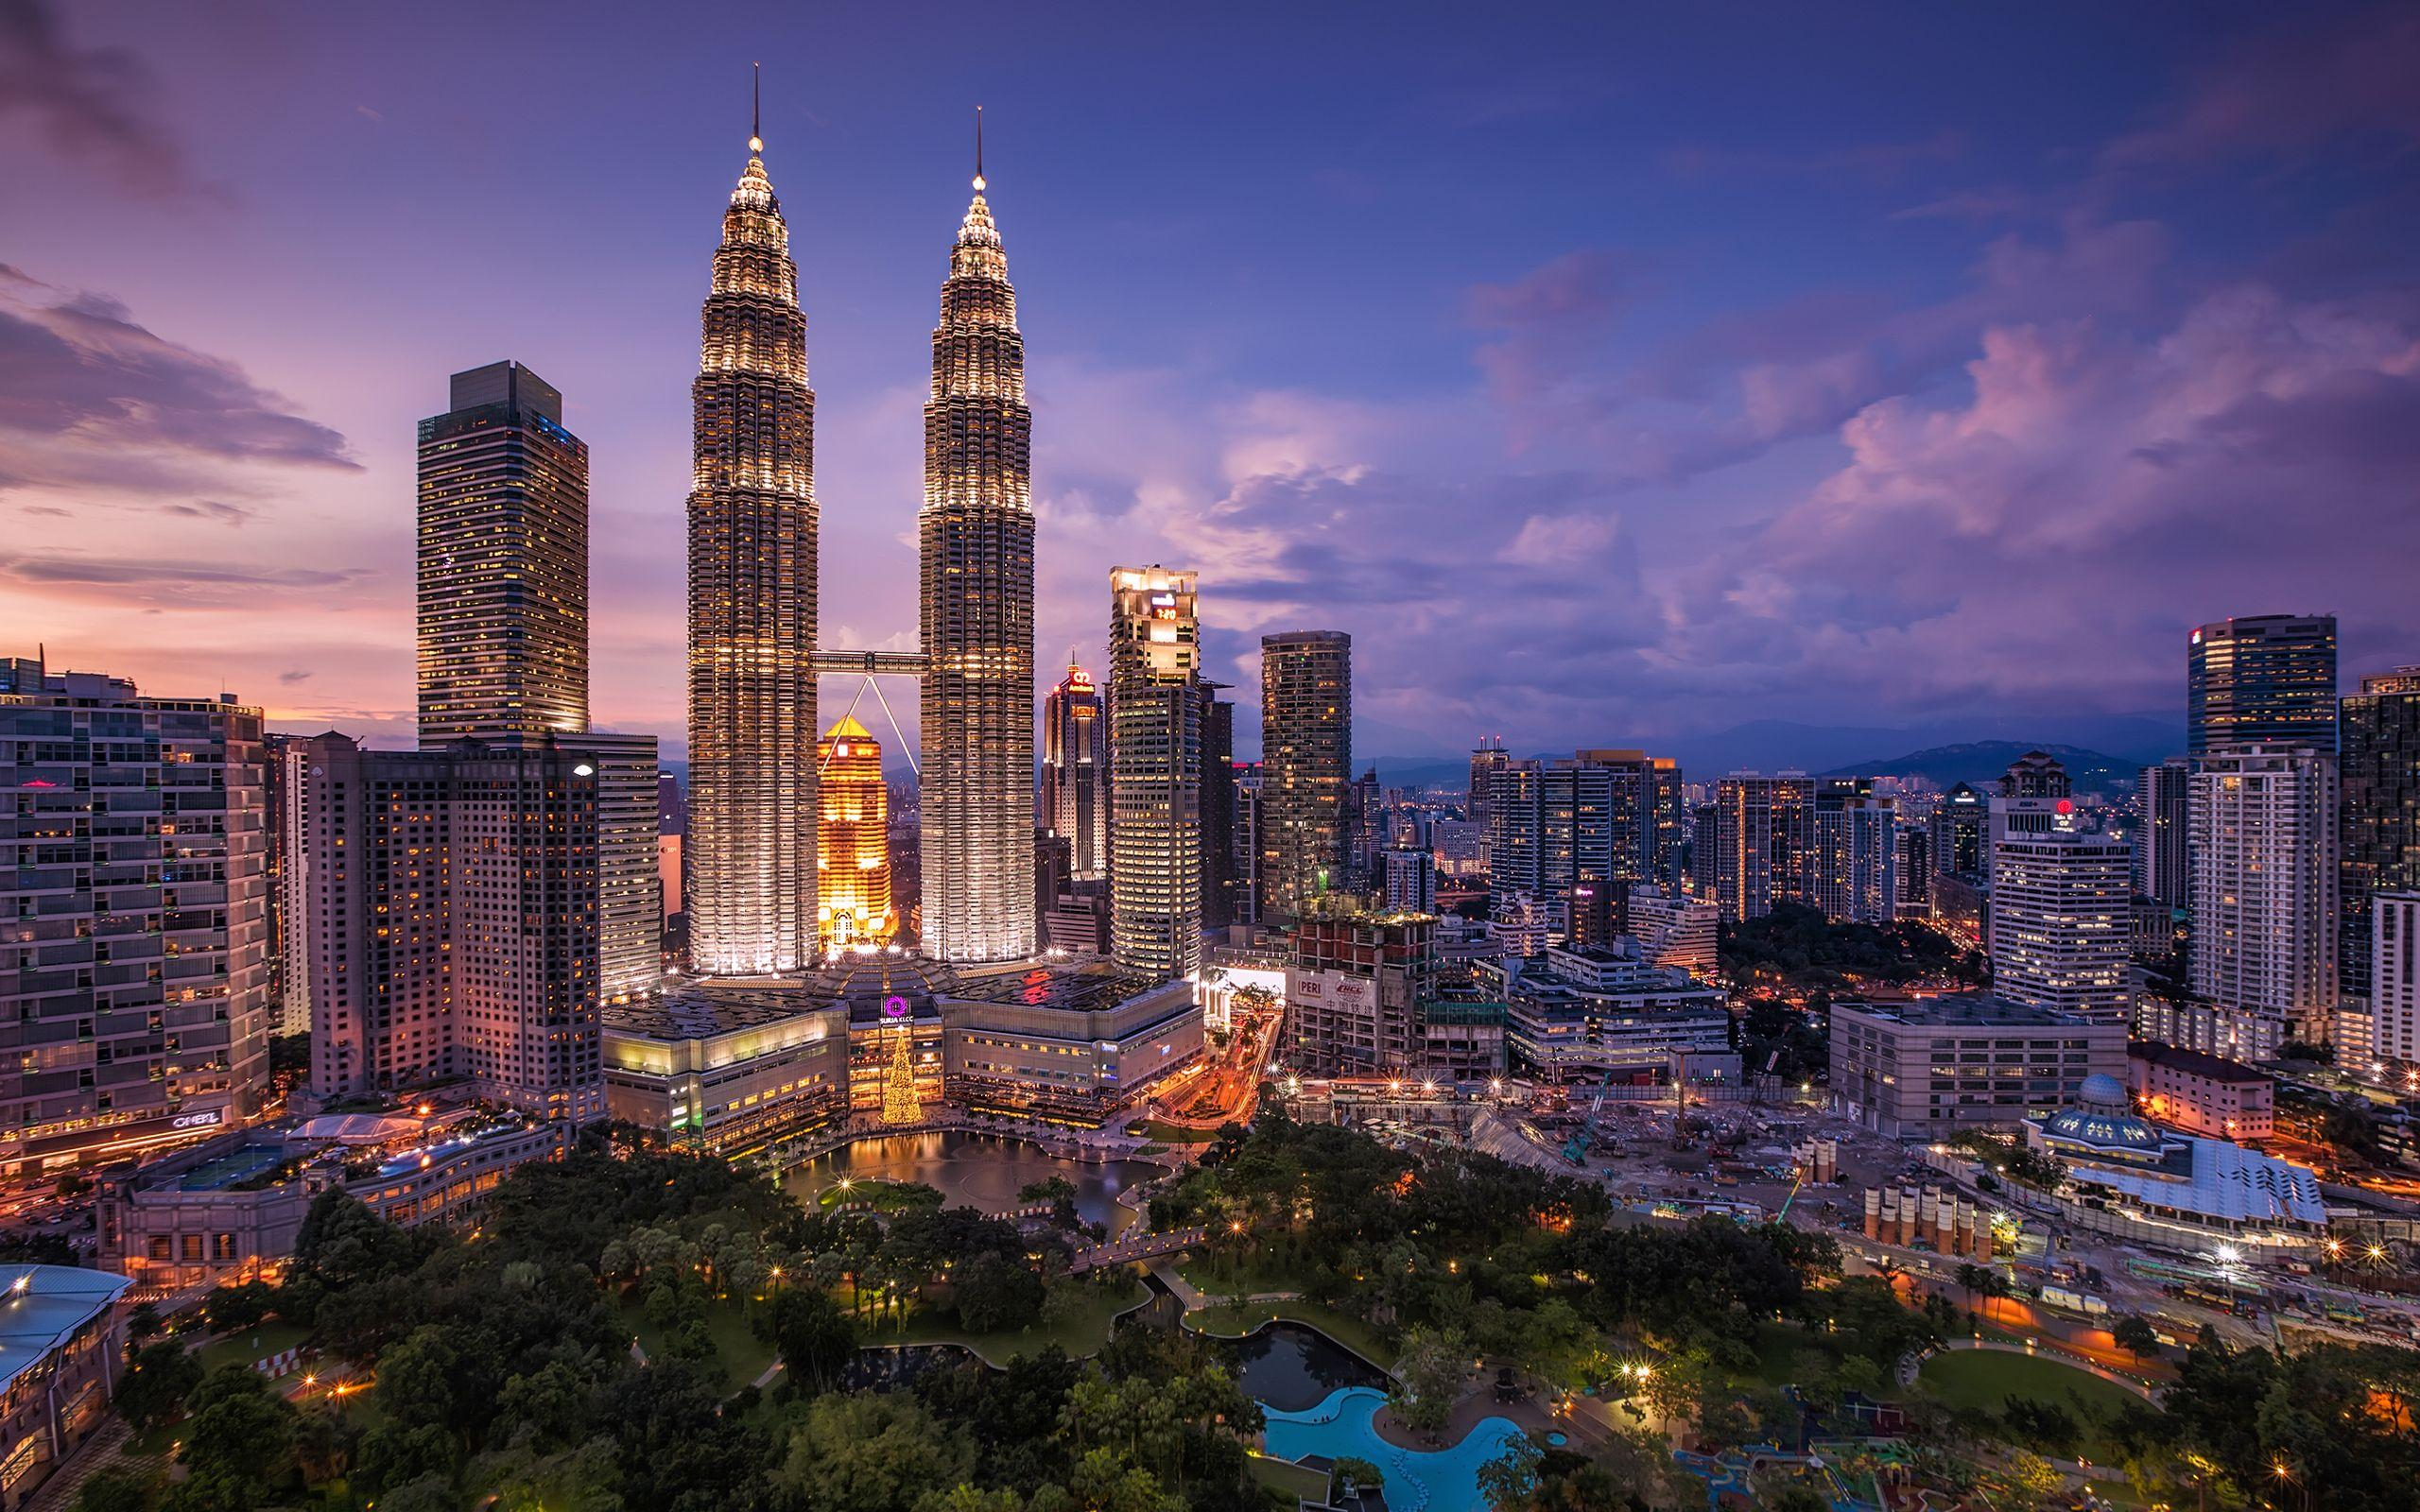 Daily Wallpaper: Petronas Towers, Malaysia | I Like To Waste My Time